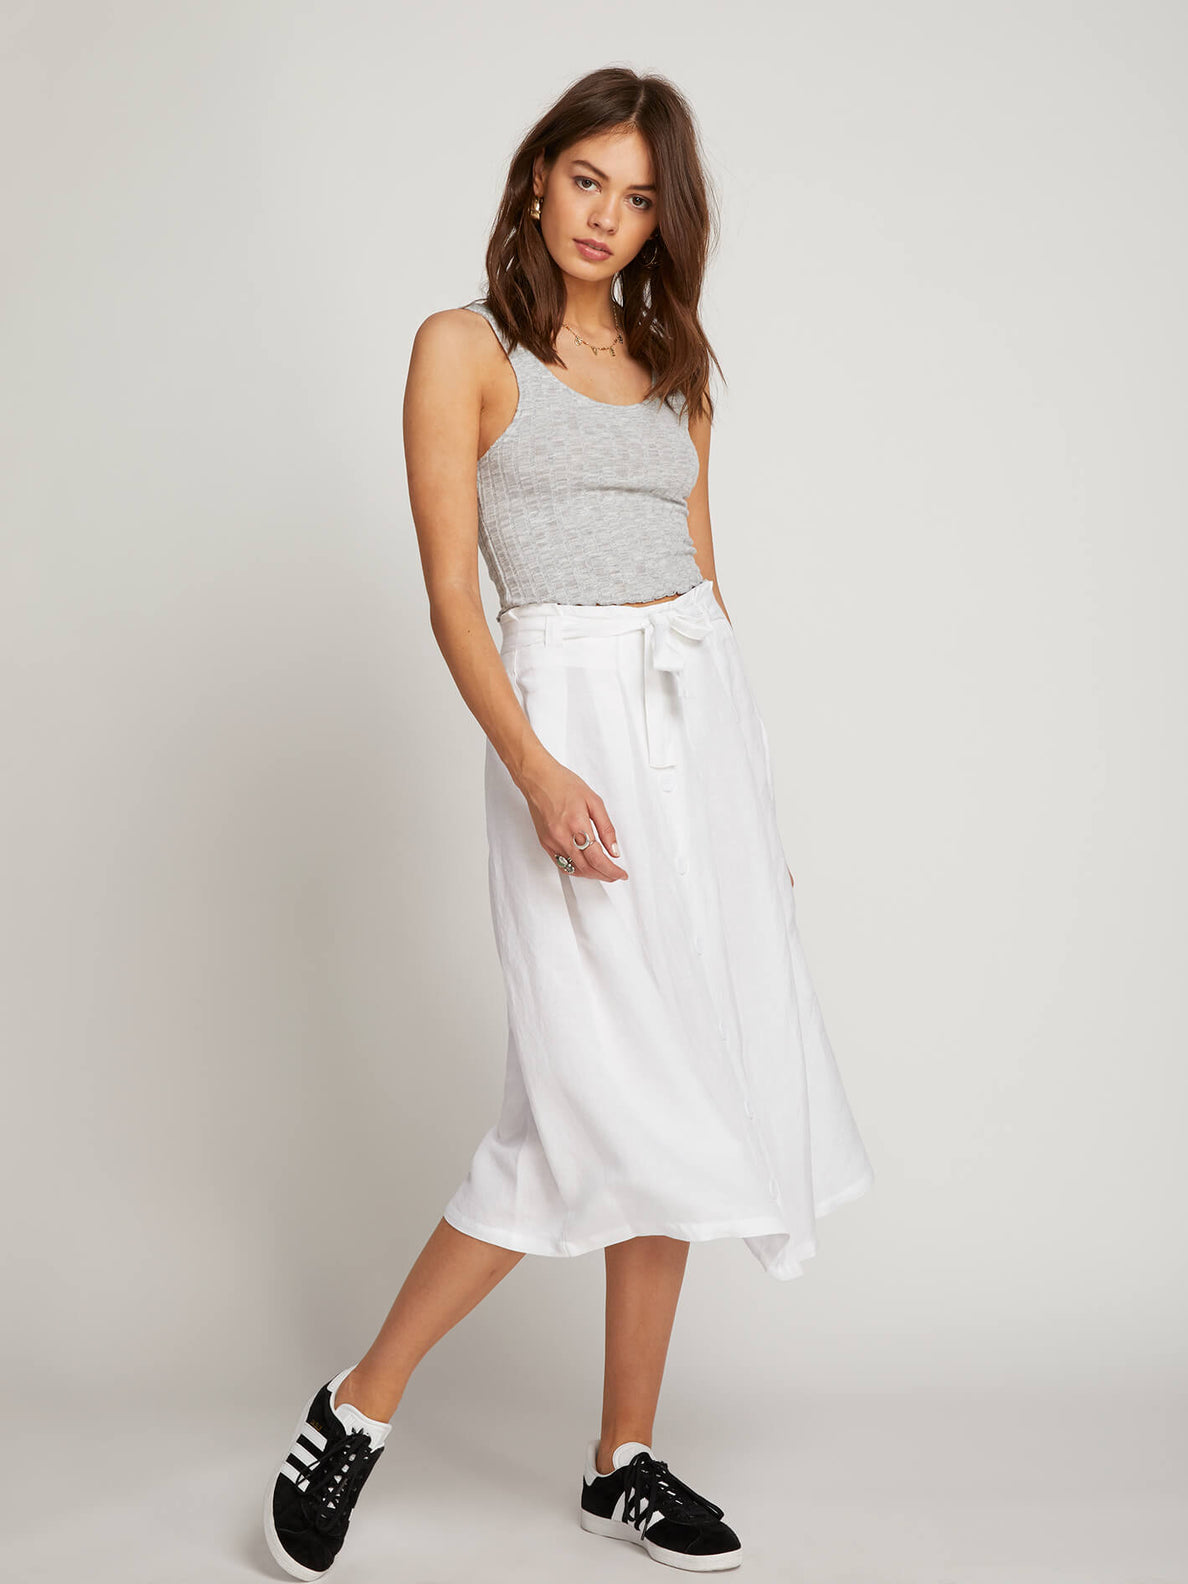 Deep Tracks Skirt In White, Front View